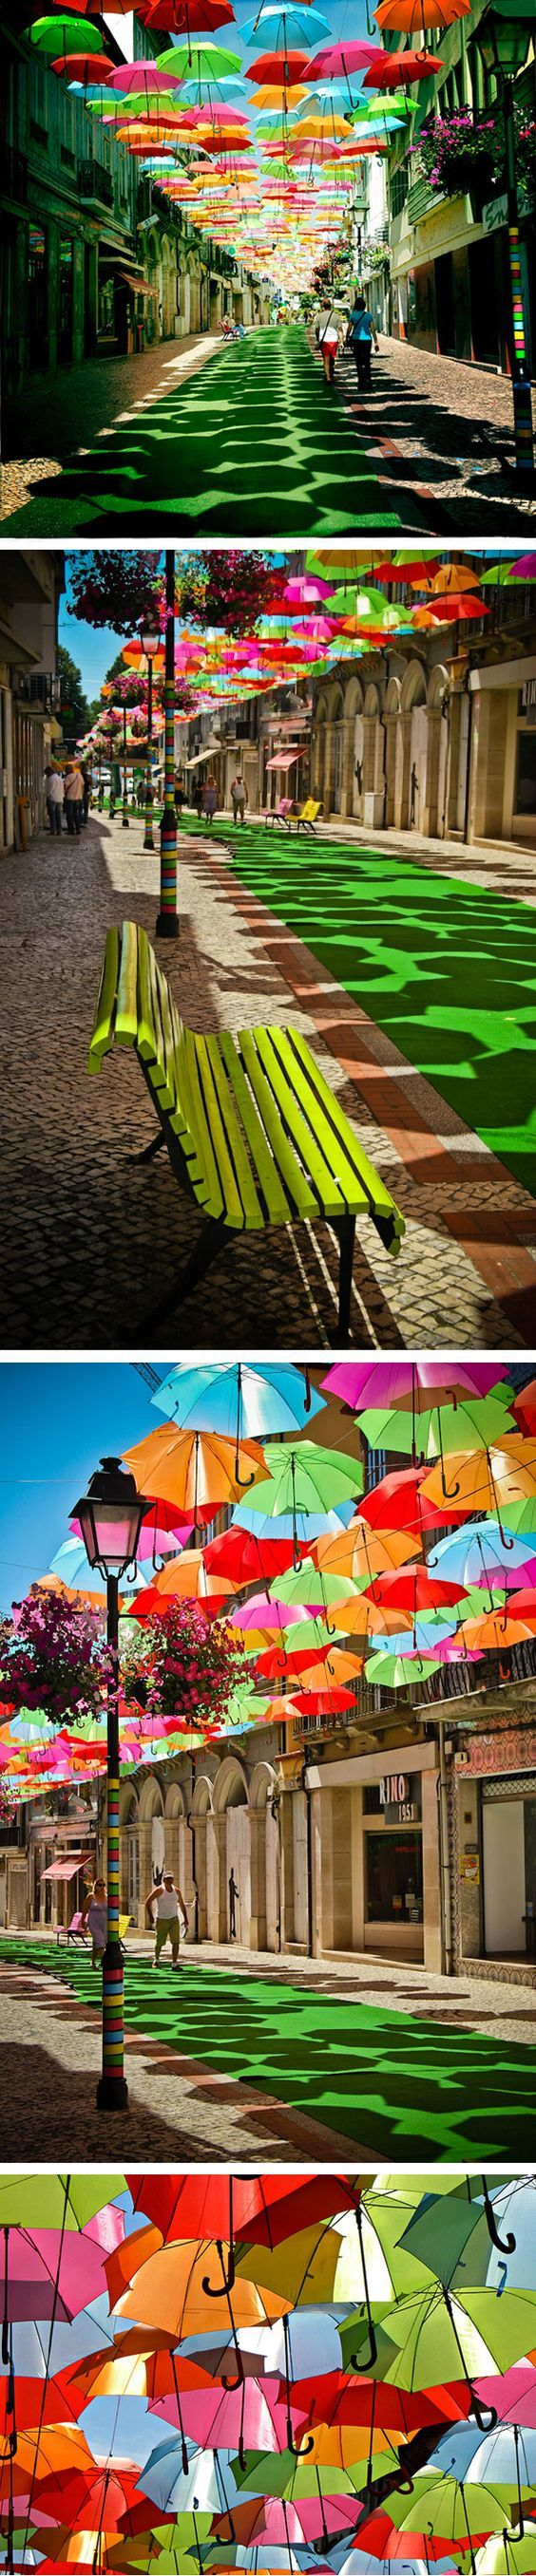 imagine this in your street. Portugal :) Águeda: